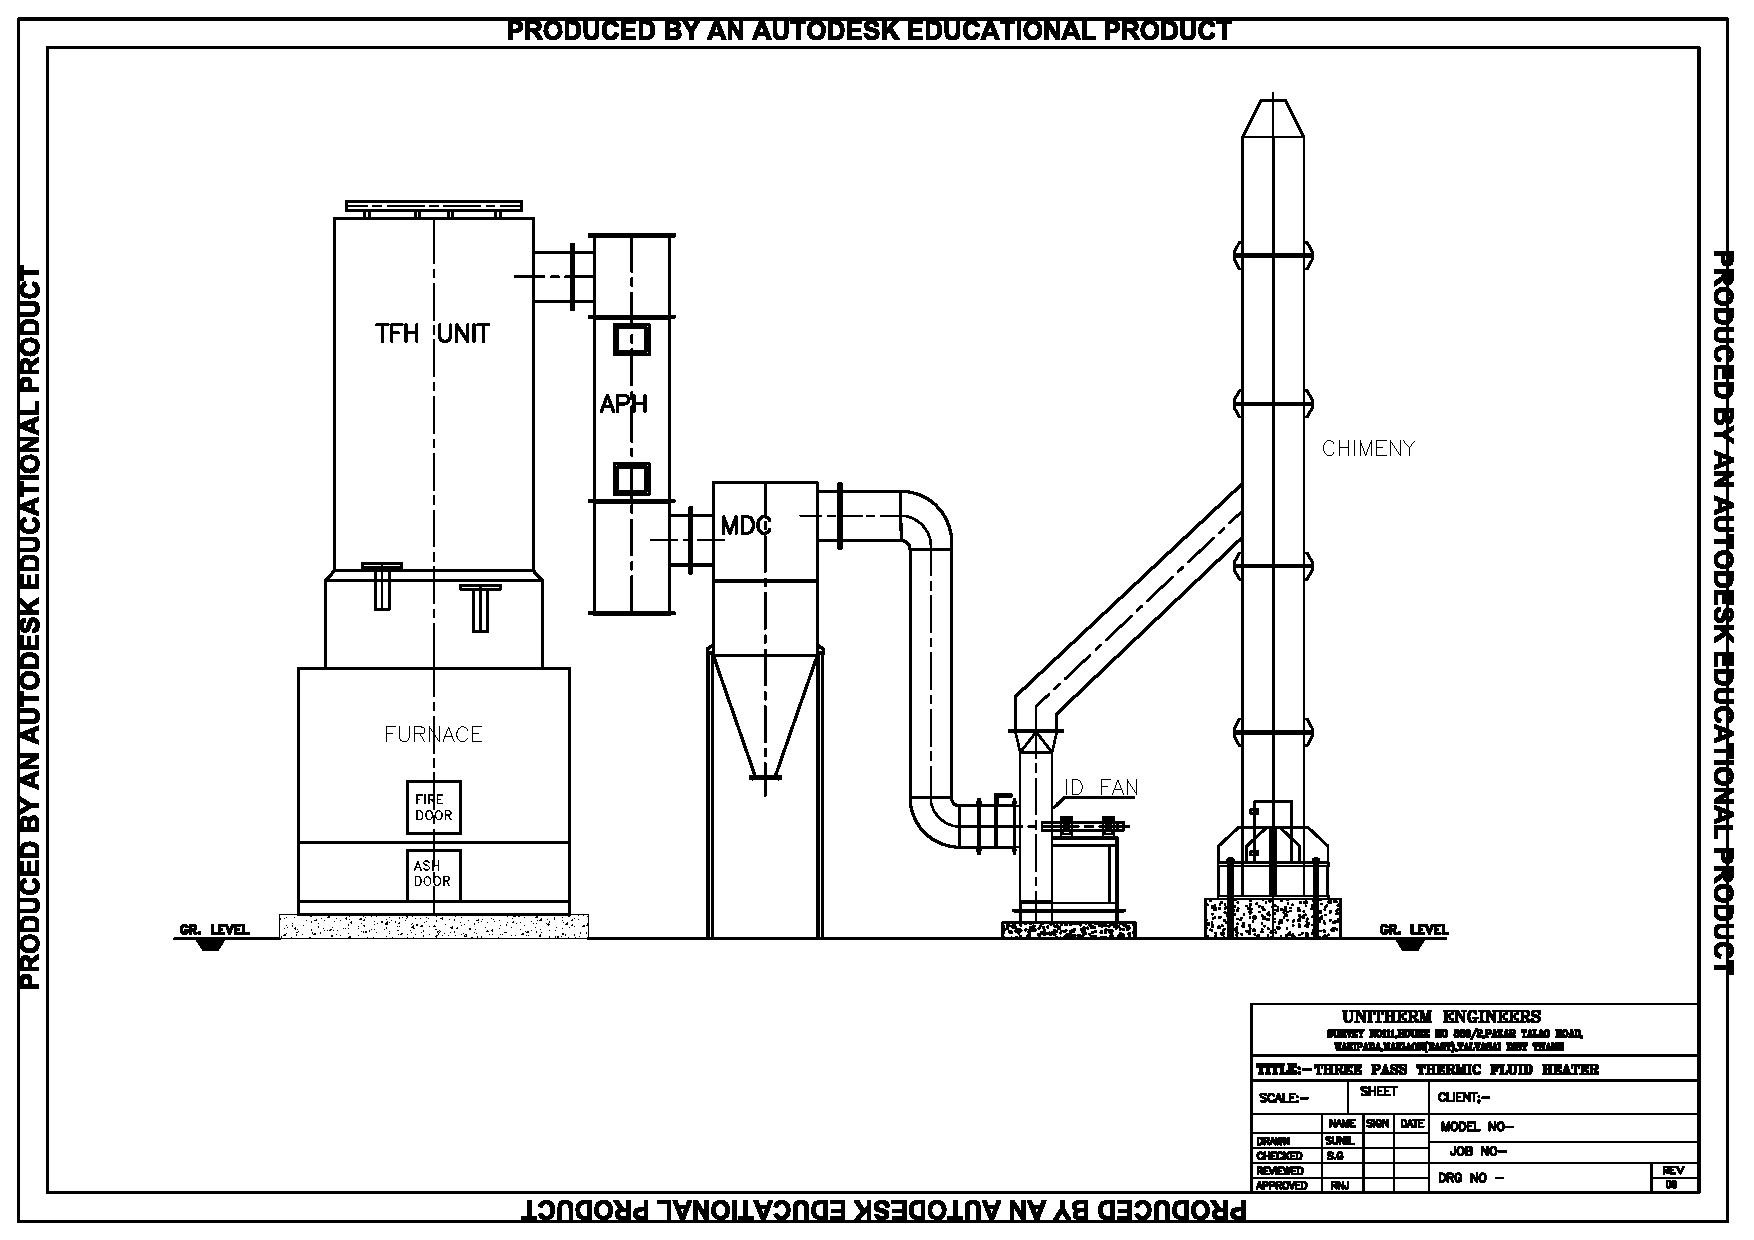 unitherm engineers products  unitherm engineers products � magic chef furnace  wiring diagram imageresizertoolcom magic chef forced